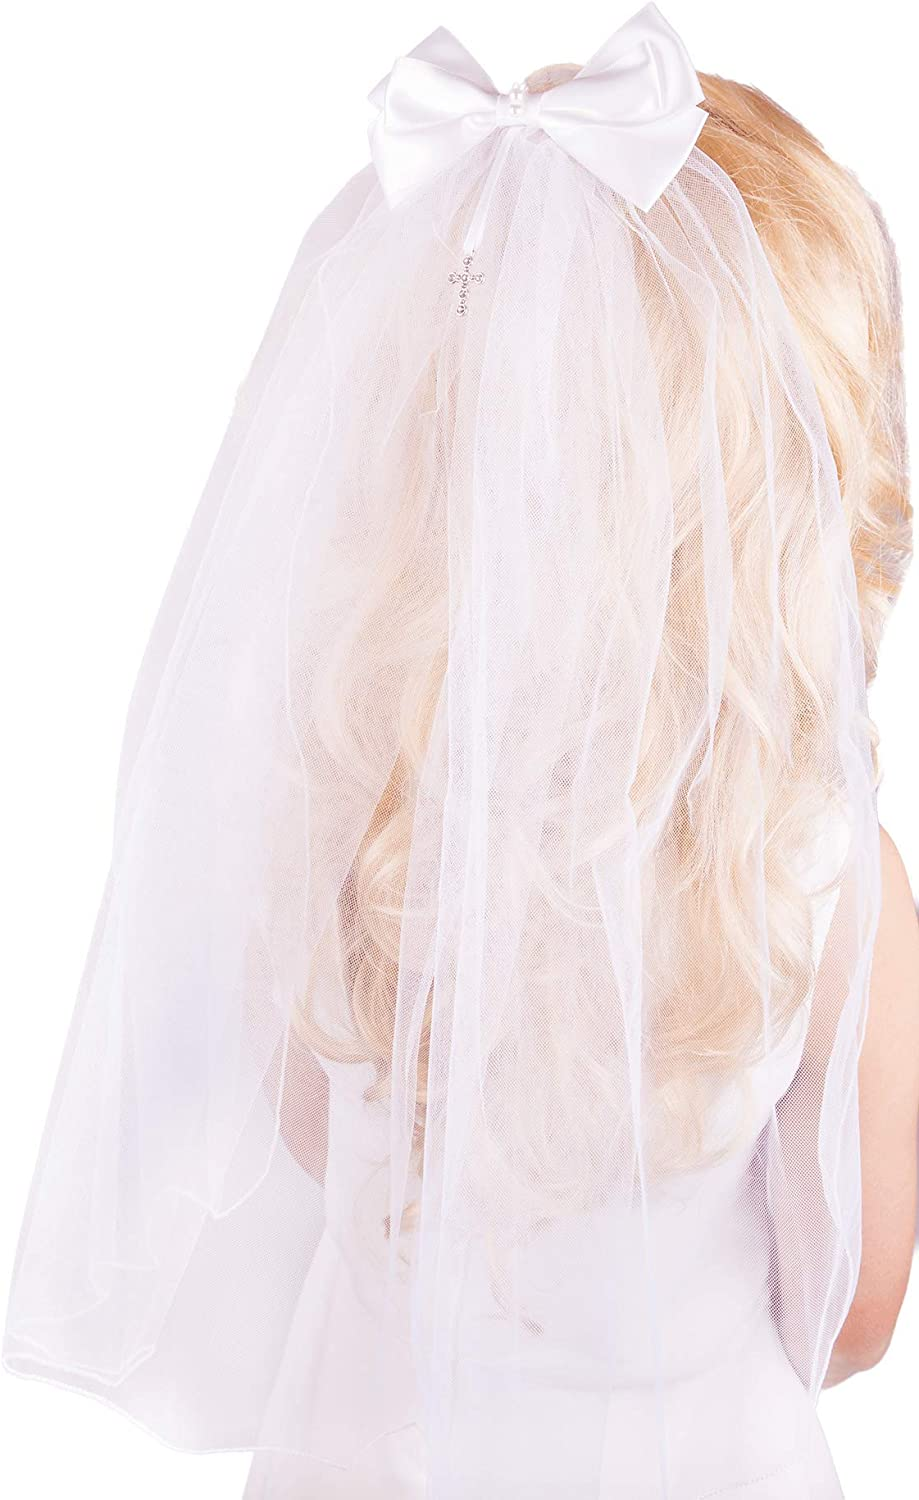 Flora Girl's White First Holy Communion/Confession Veil with Diamante Cross Bow, 21